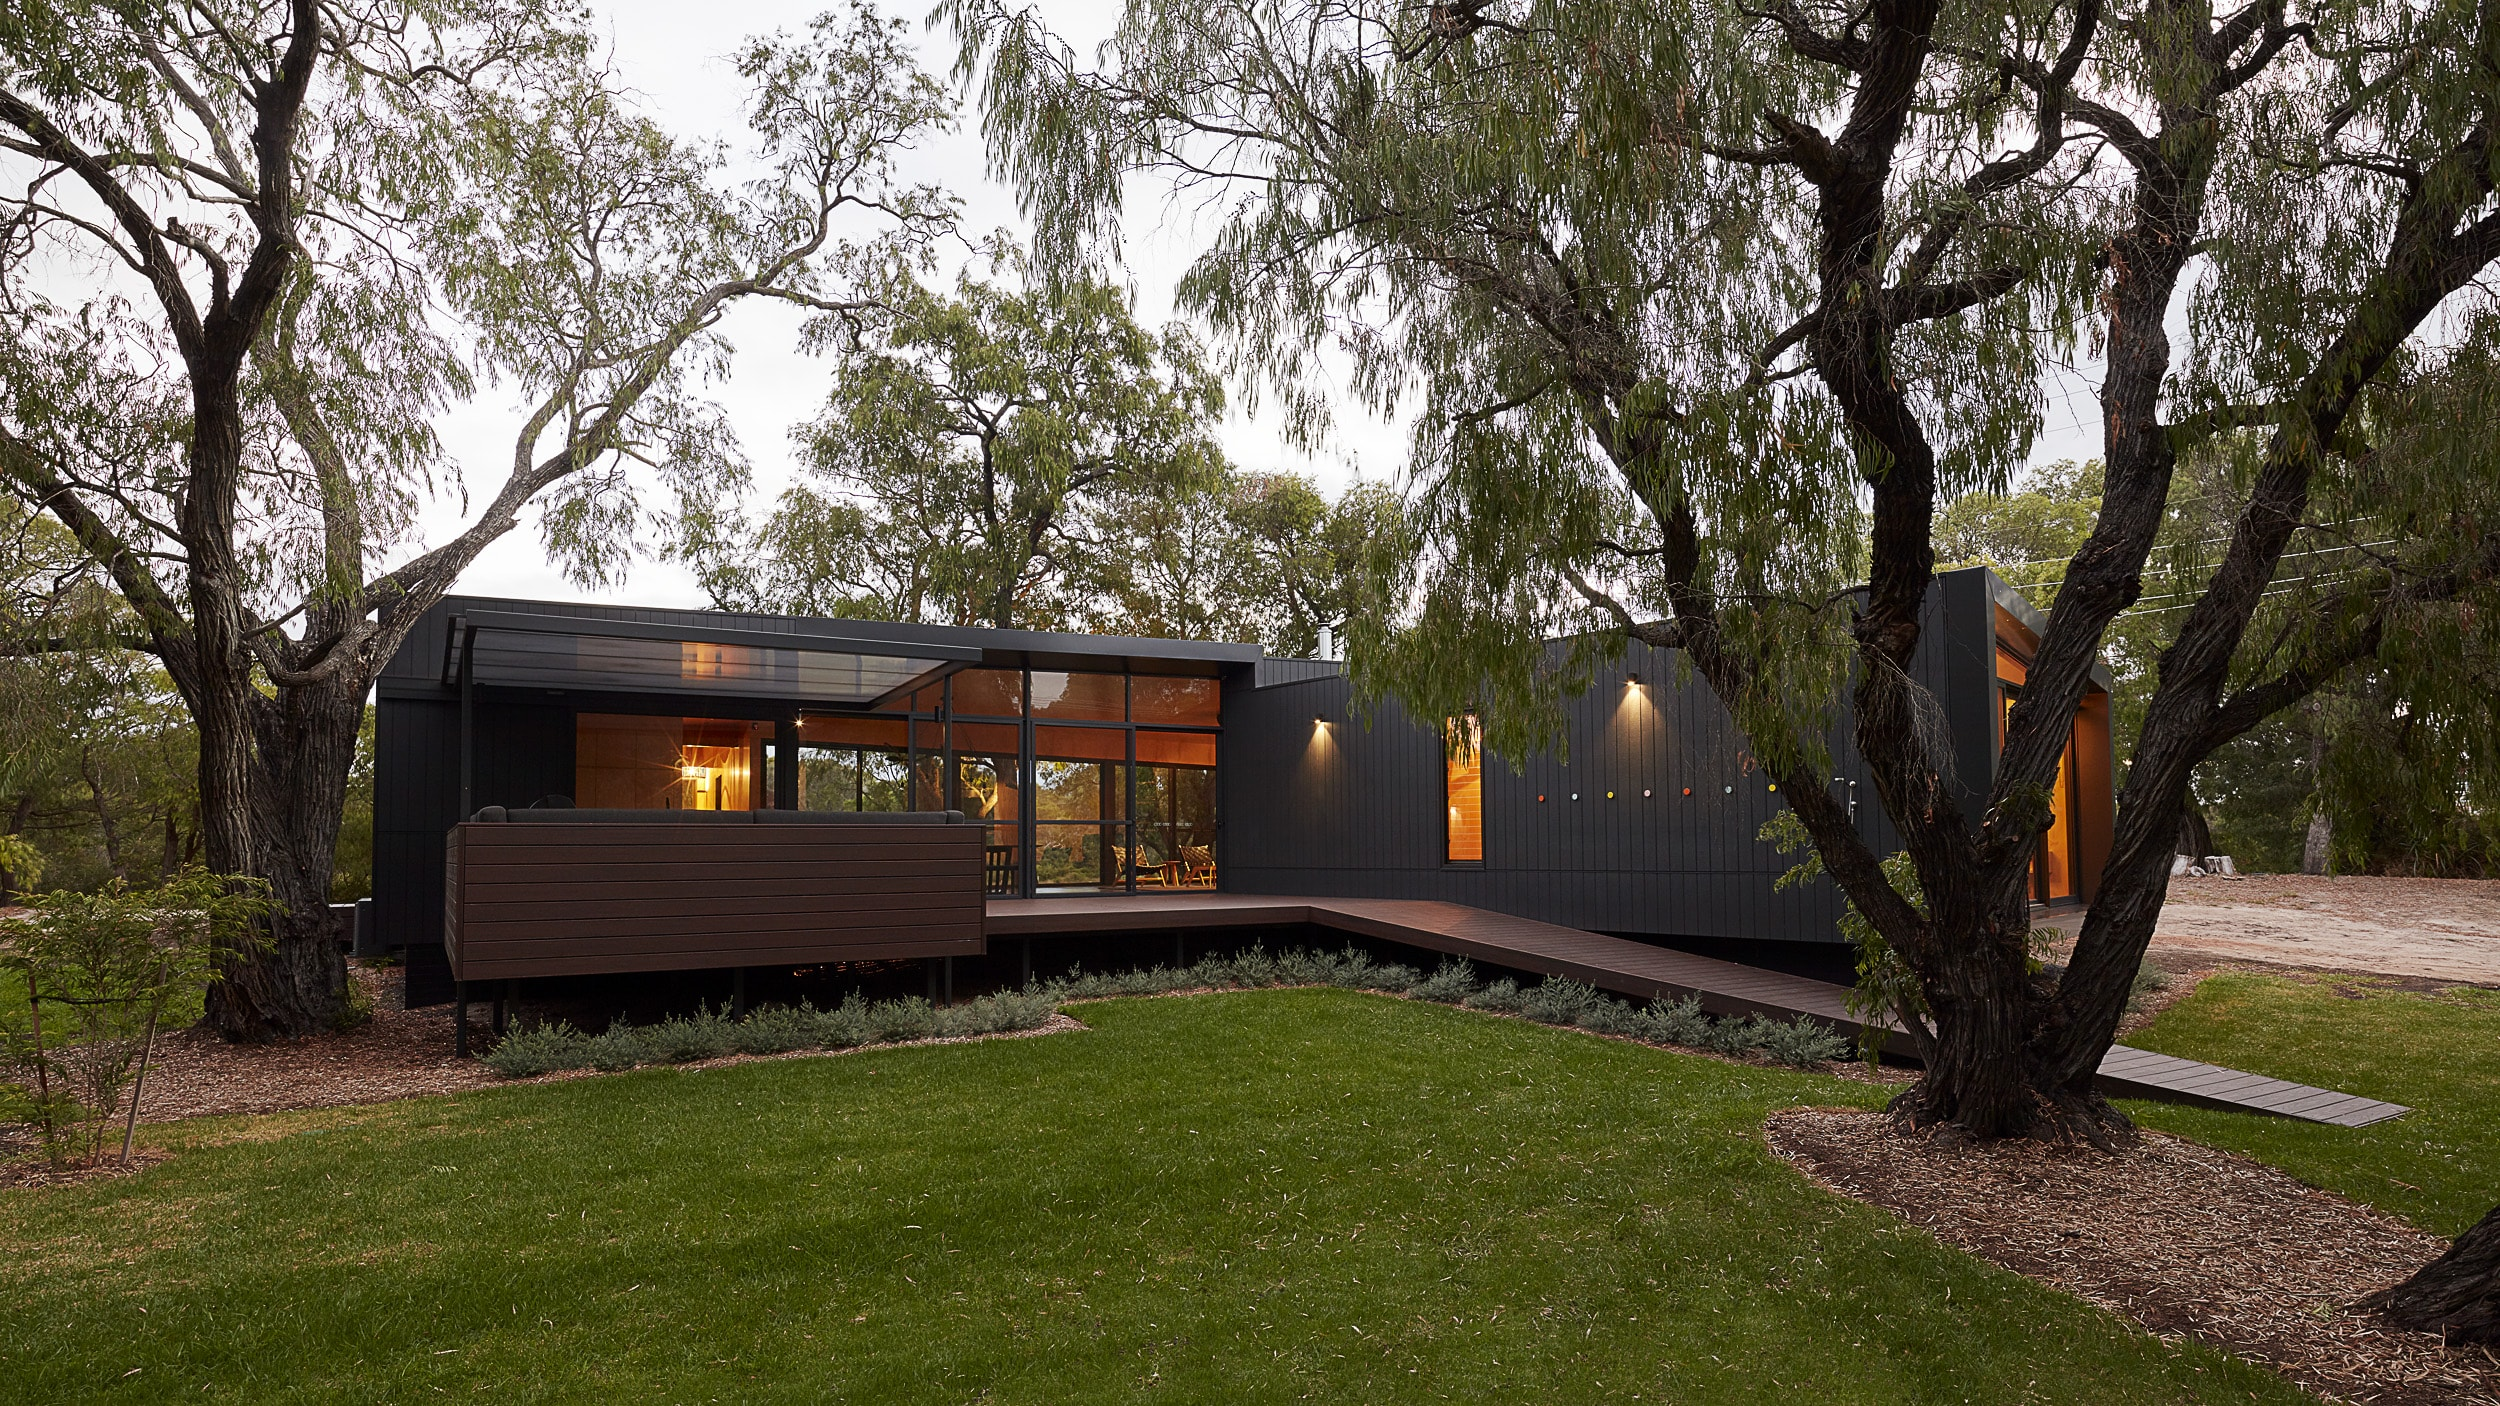 82 Degrees By Meaghan White Architect Local Australian Design And Interiors Quindalup, Wa Image 13